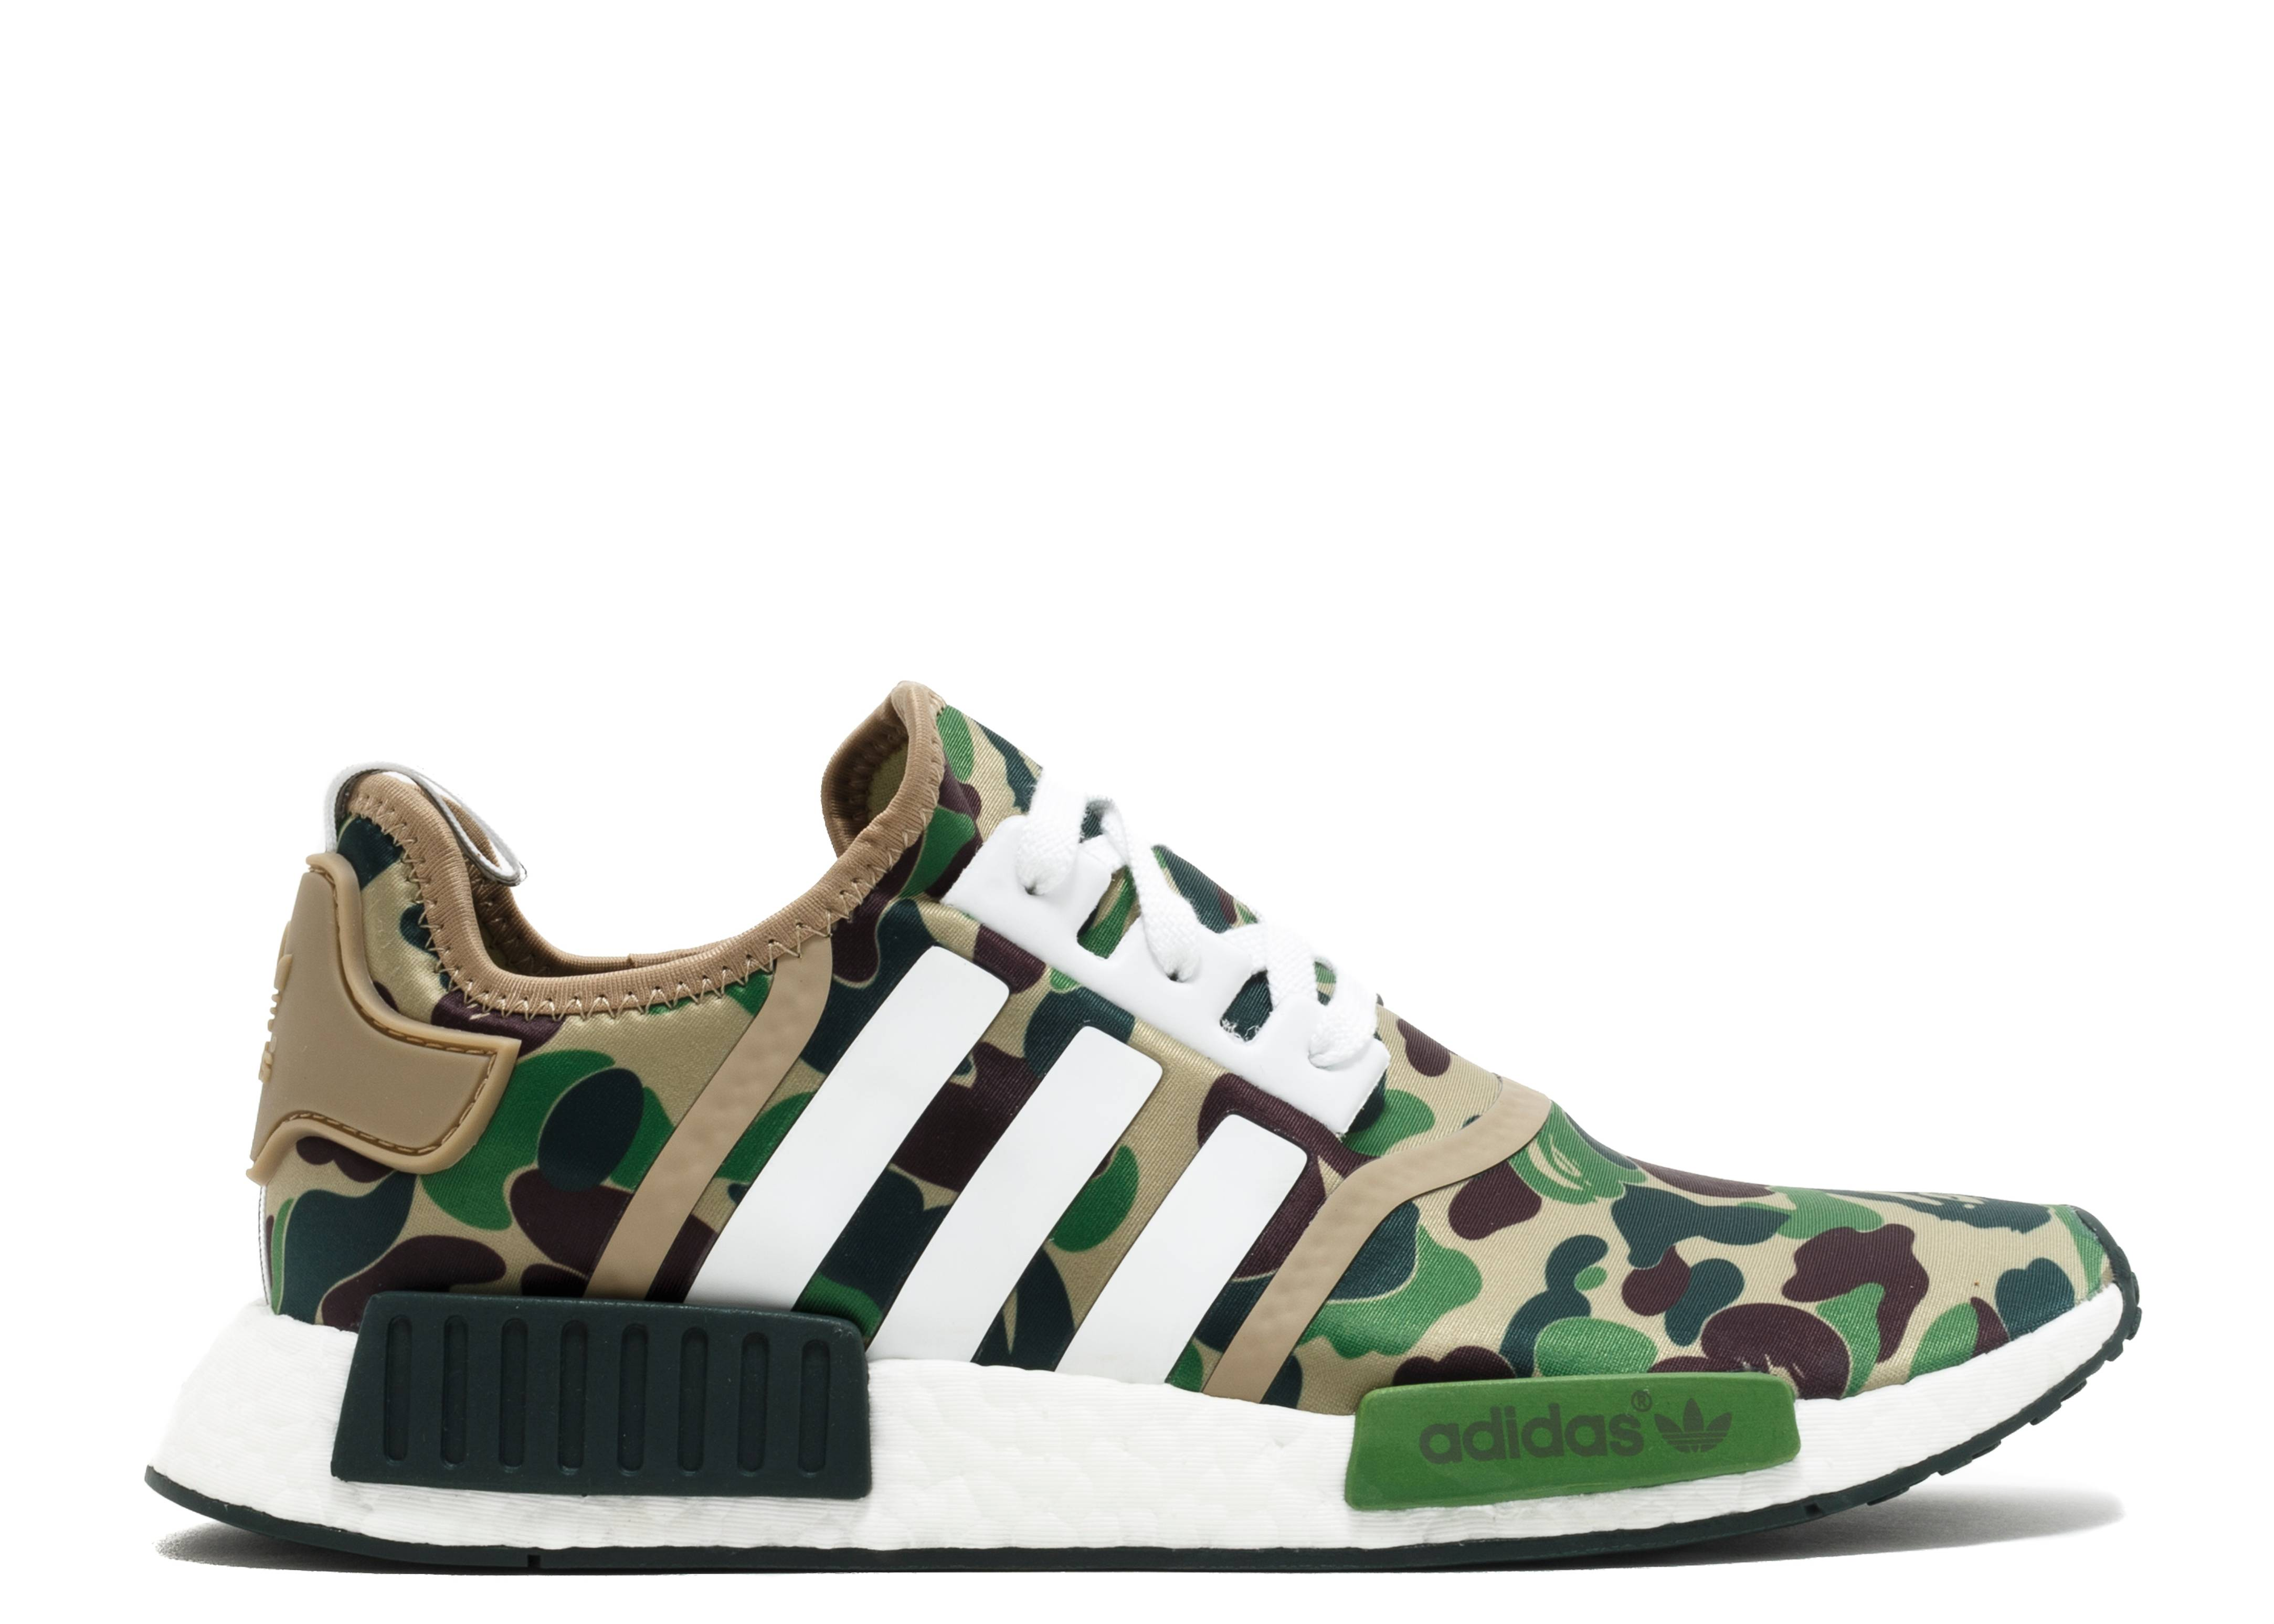 f82be0ee7 adidas nmd bape size 12 adidas hat for women